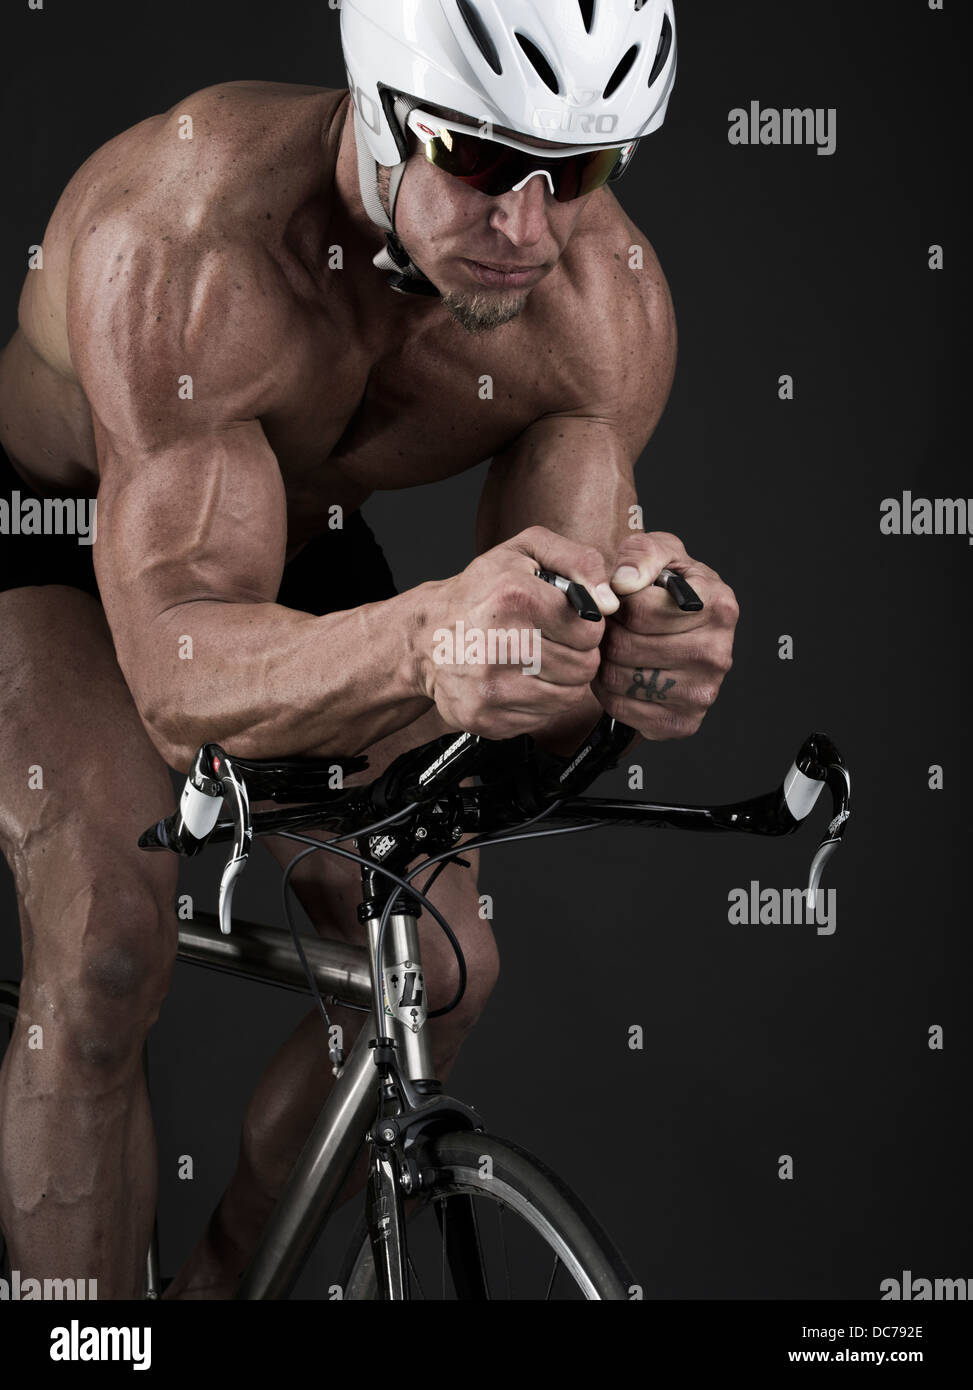 Triathlete time trial racer on bicycle - Stock Image